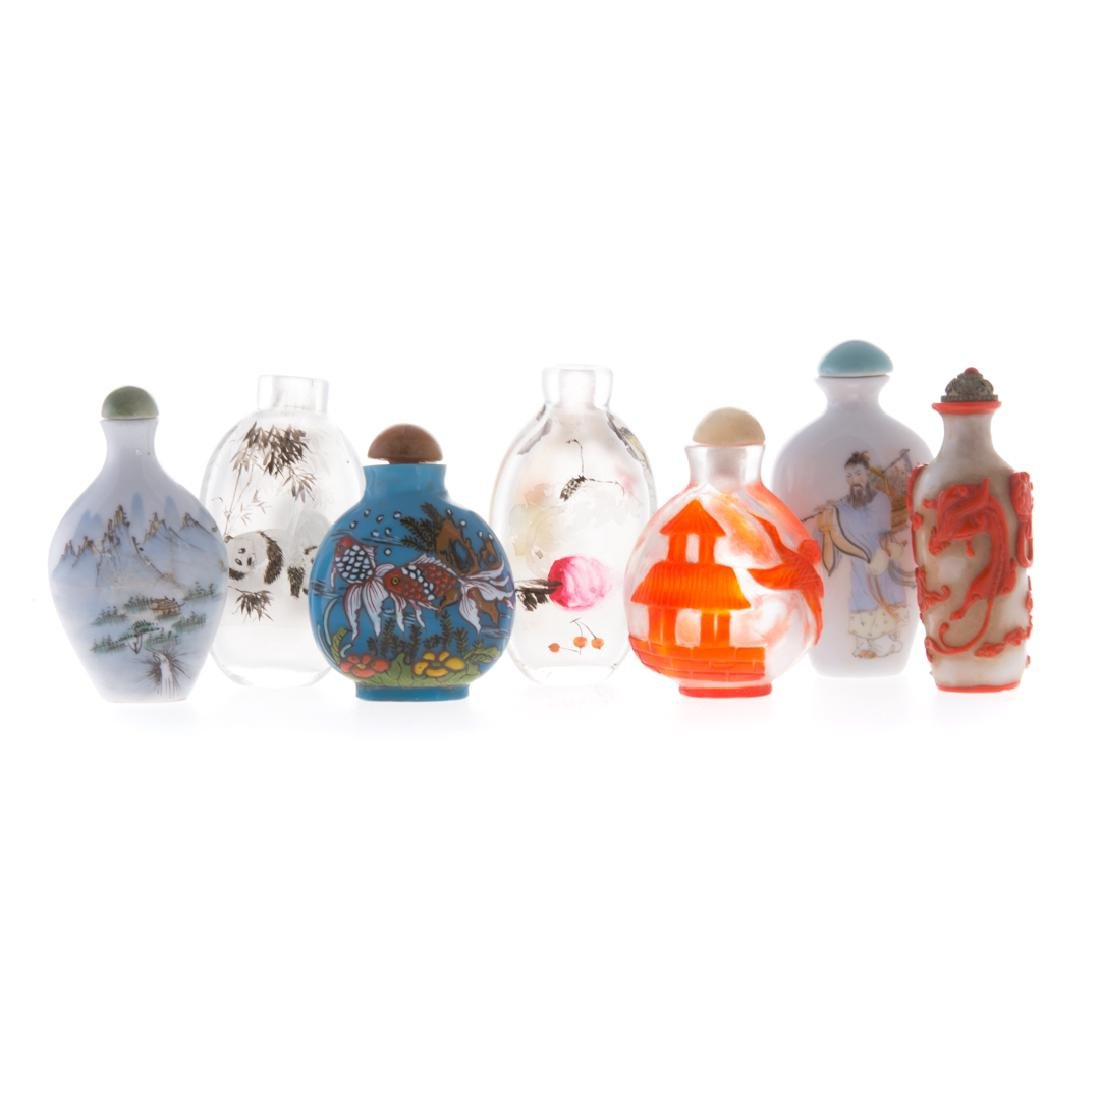 Seven Chinese glass and porcelain snuff bottles